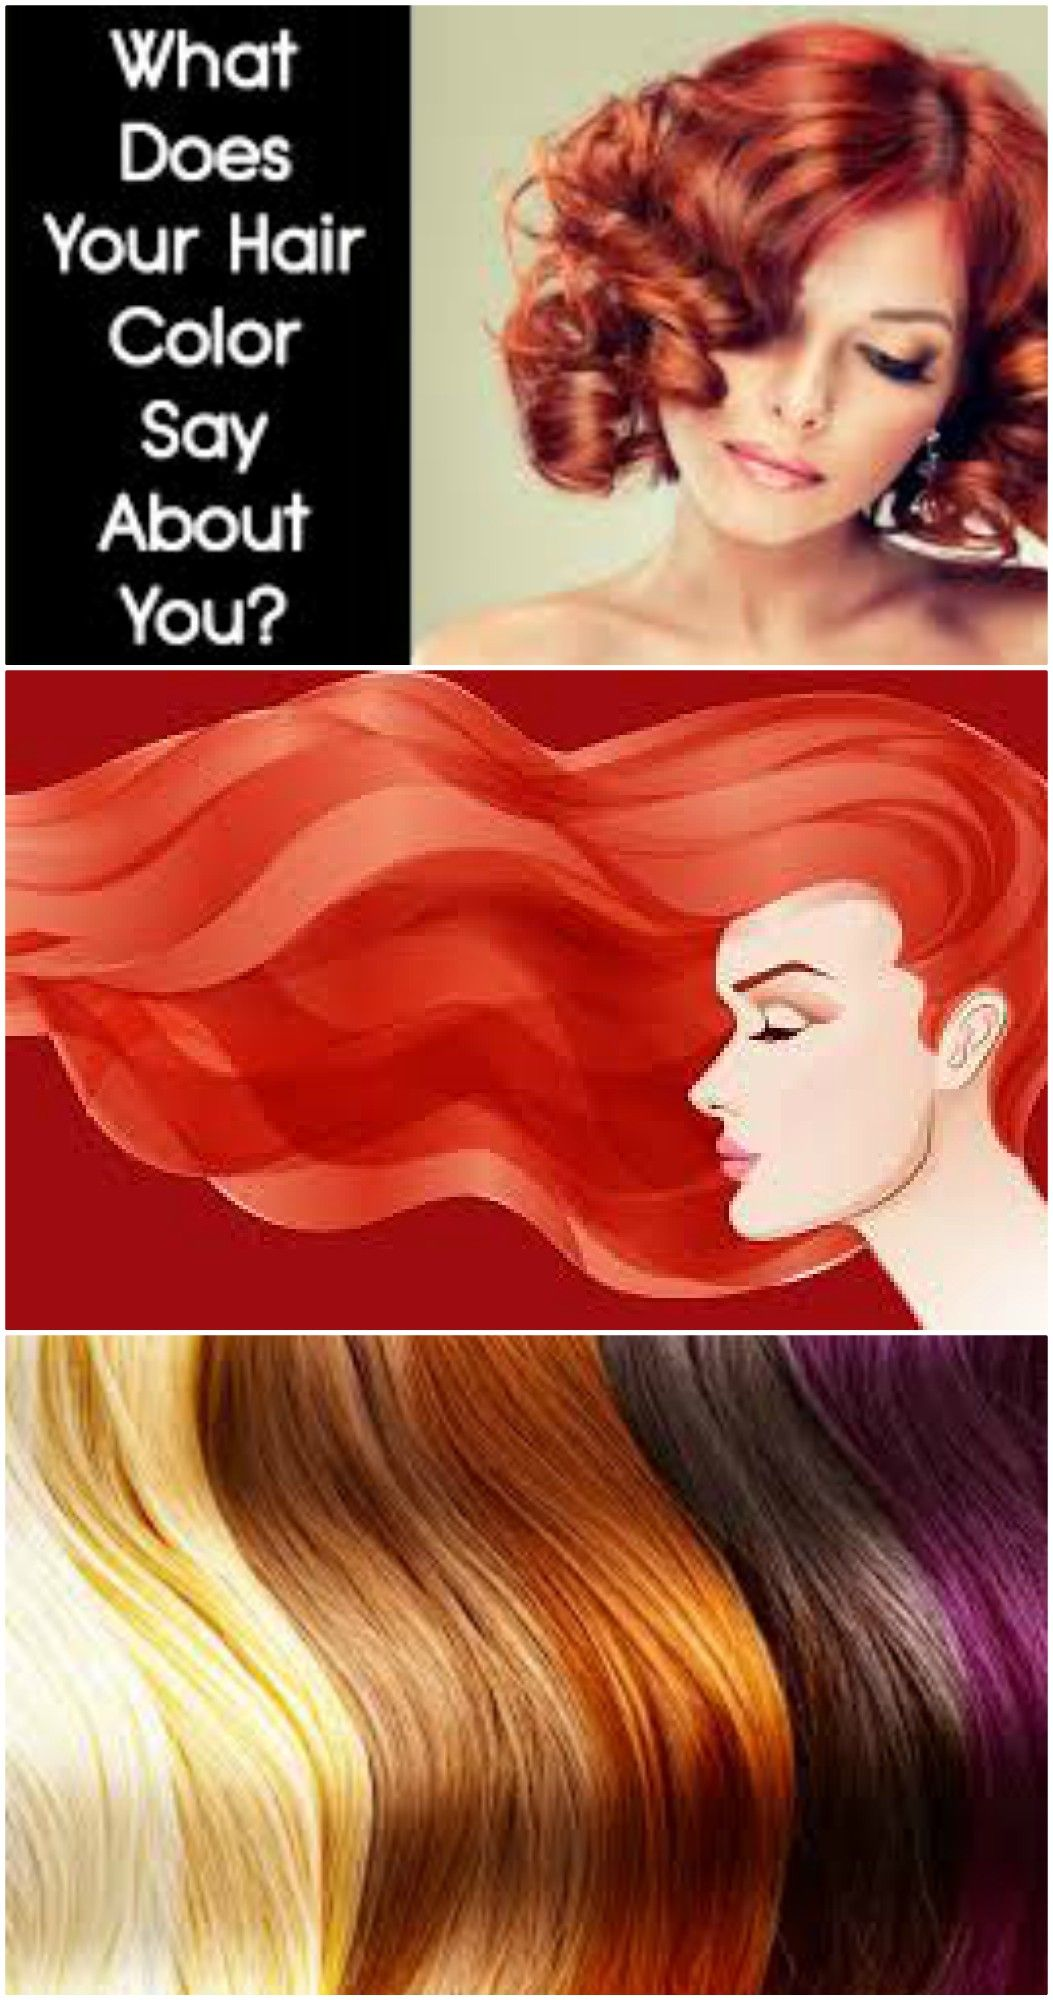 What Does Your Hair Color Say About You Color Craz Hair Health